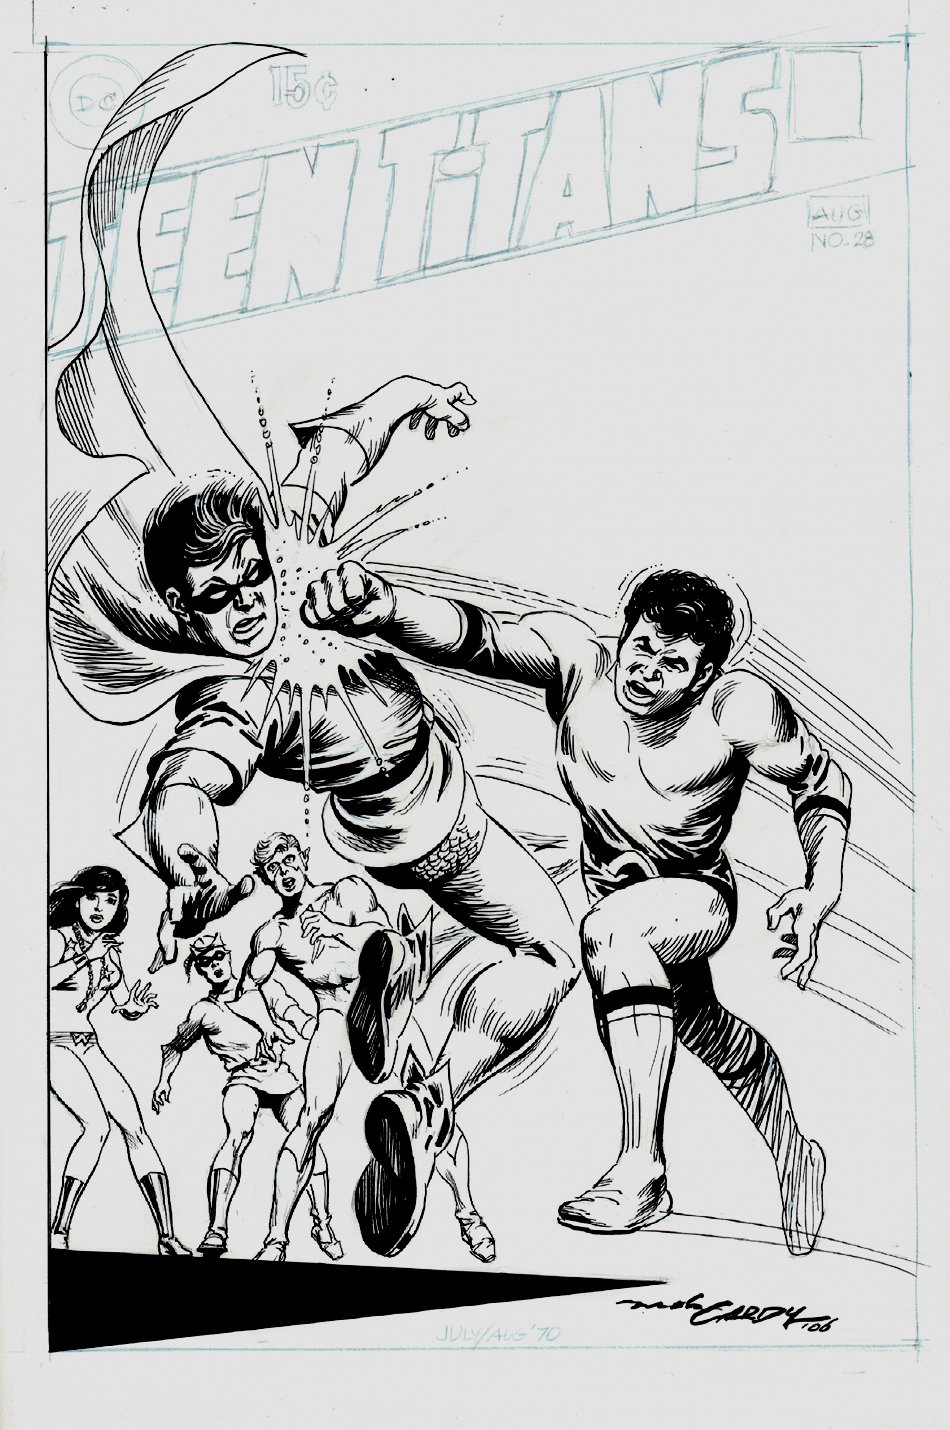 Teen Titans #28 Cover Recreation (2006)